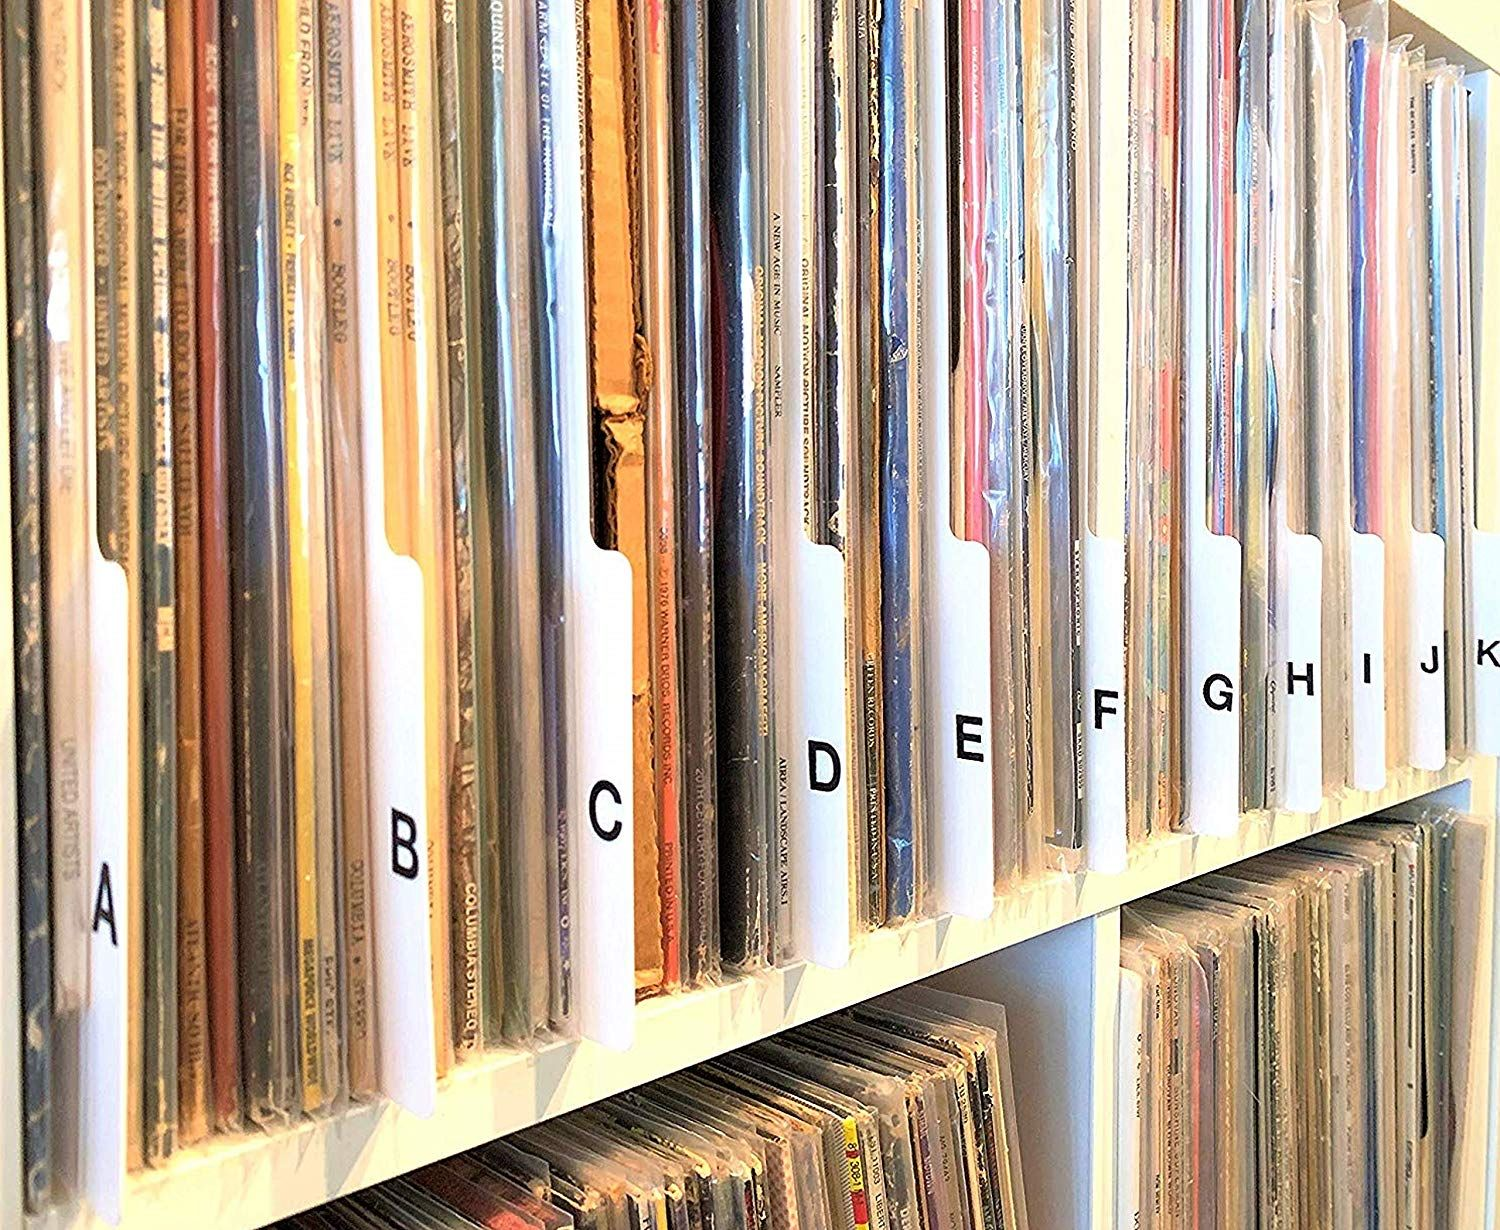 A To Z Lp Vinyl Record Dividers In 2020 Vinyl Records Record Dividers Vinyl Record Album